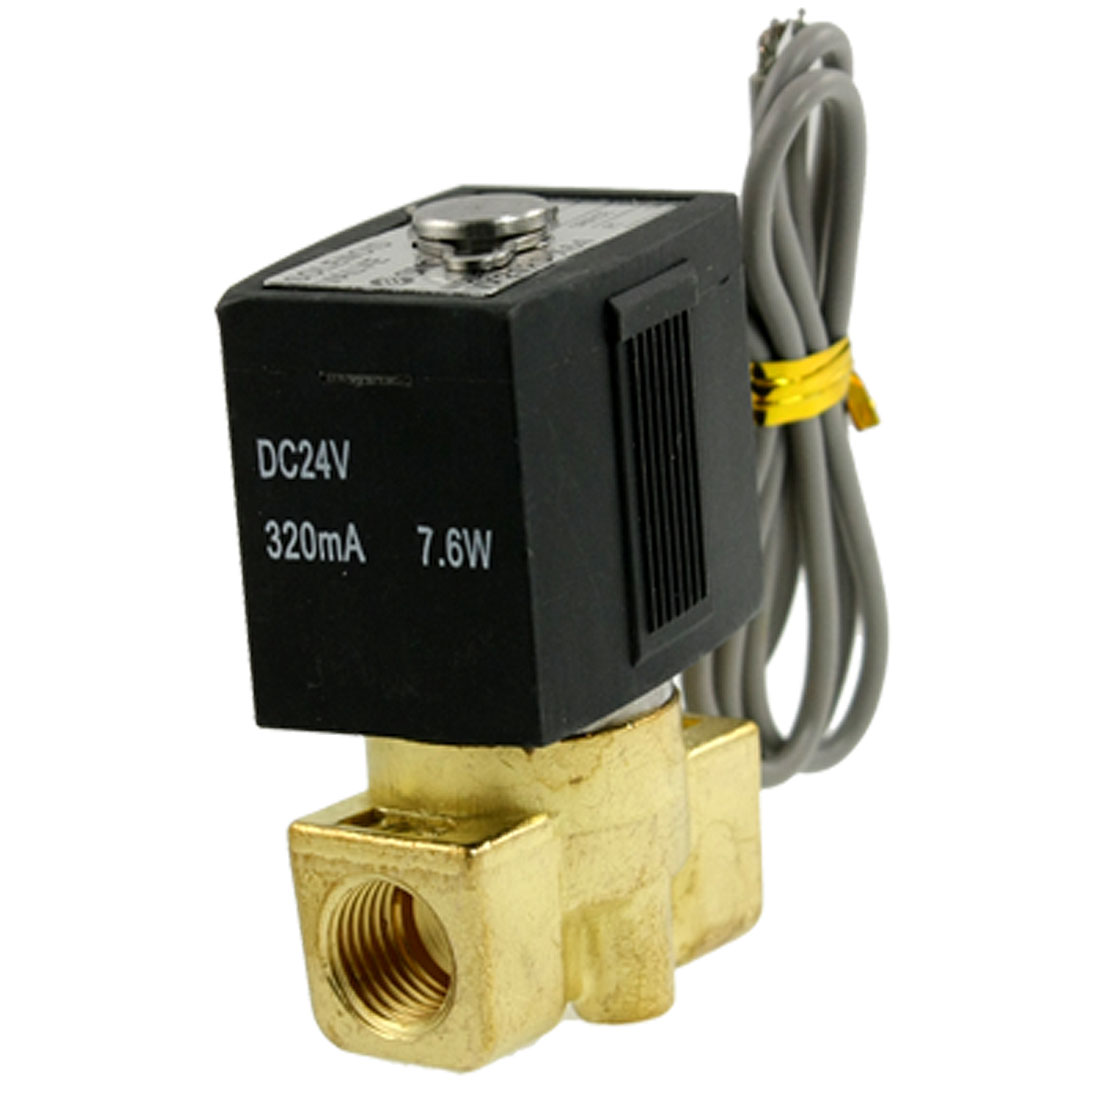 "DC 24V 320mA 7.6W 1/4"" Thread Dia. 2 Port 2 Position Solenoid Valve"